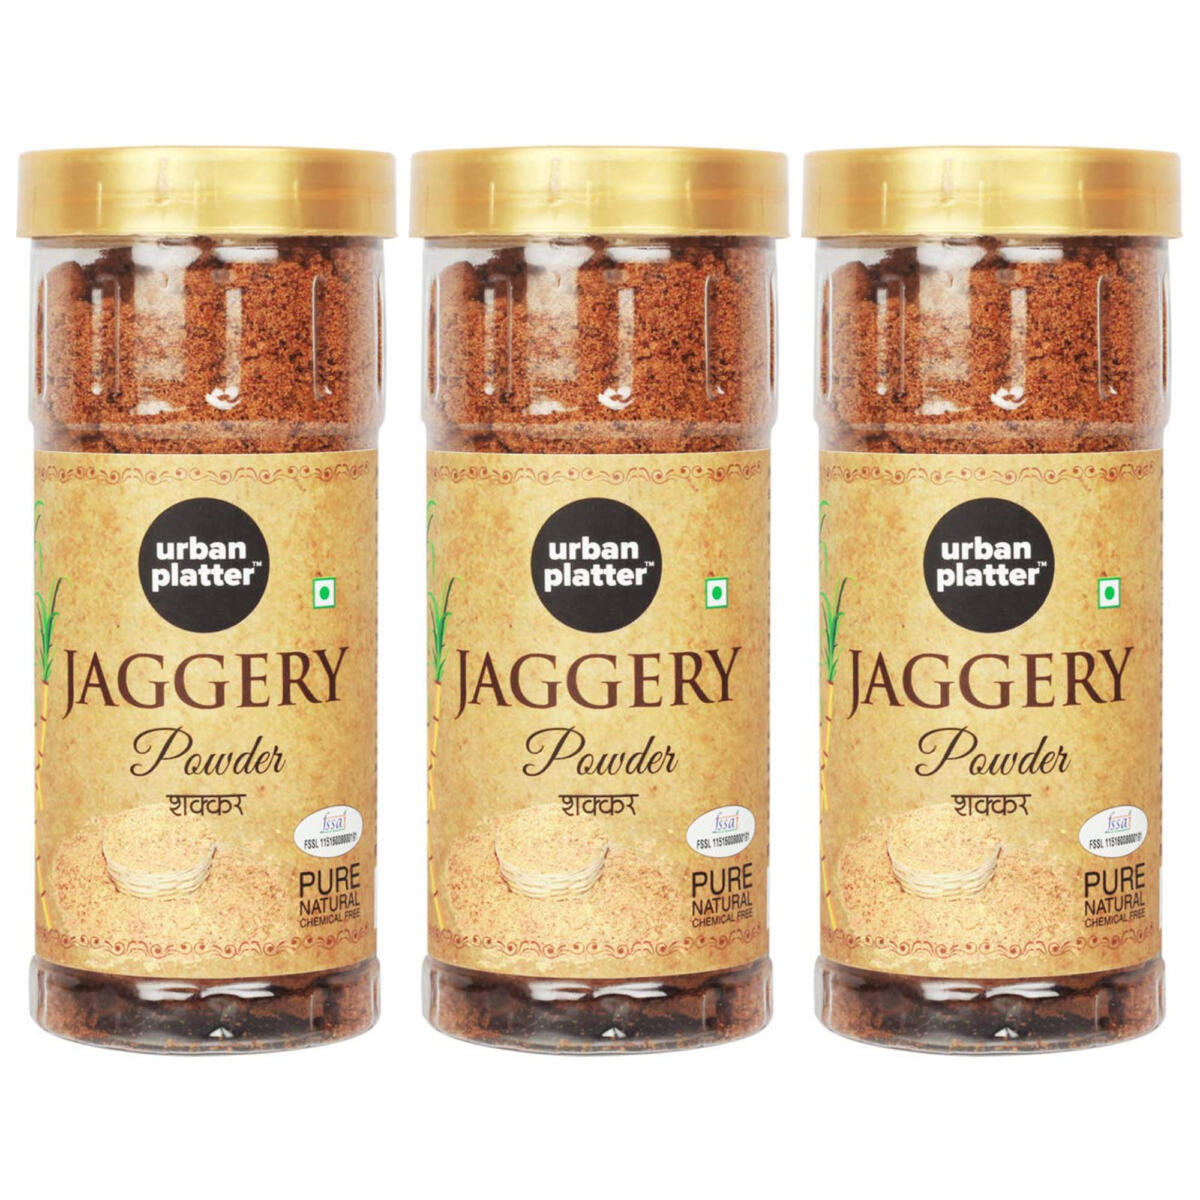 Urban Platter Jaggery Powder, 500g [Pure, Natural & Chemical Free] [Pack of  3]